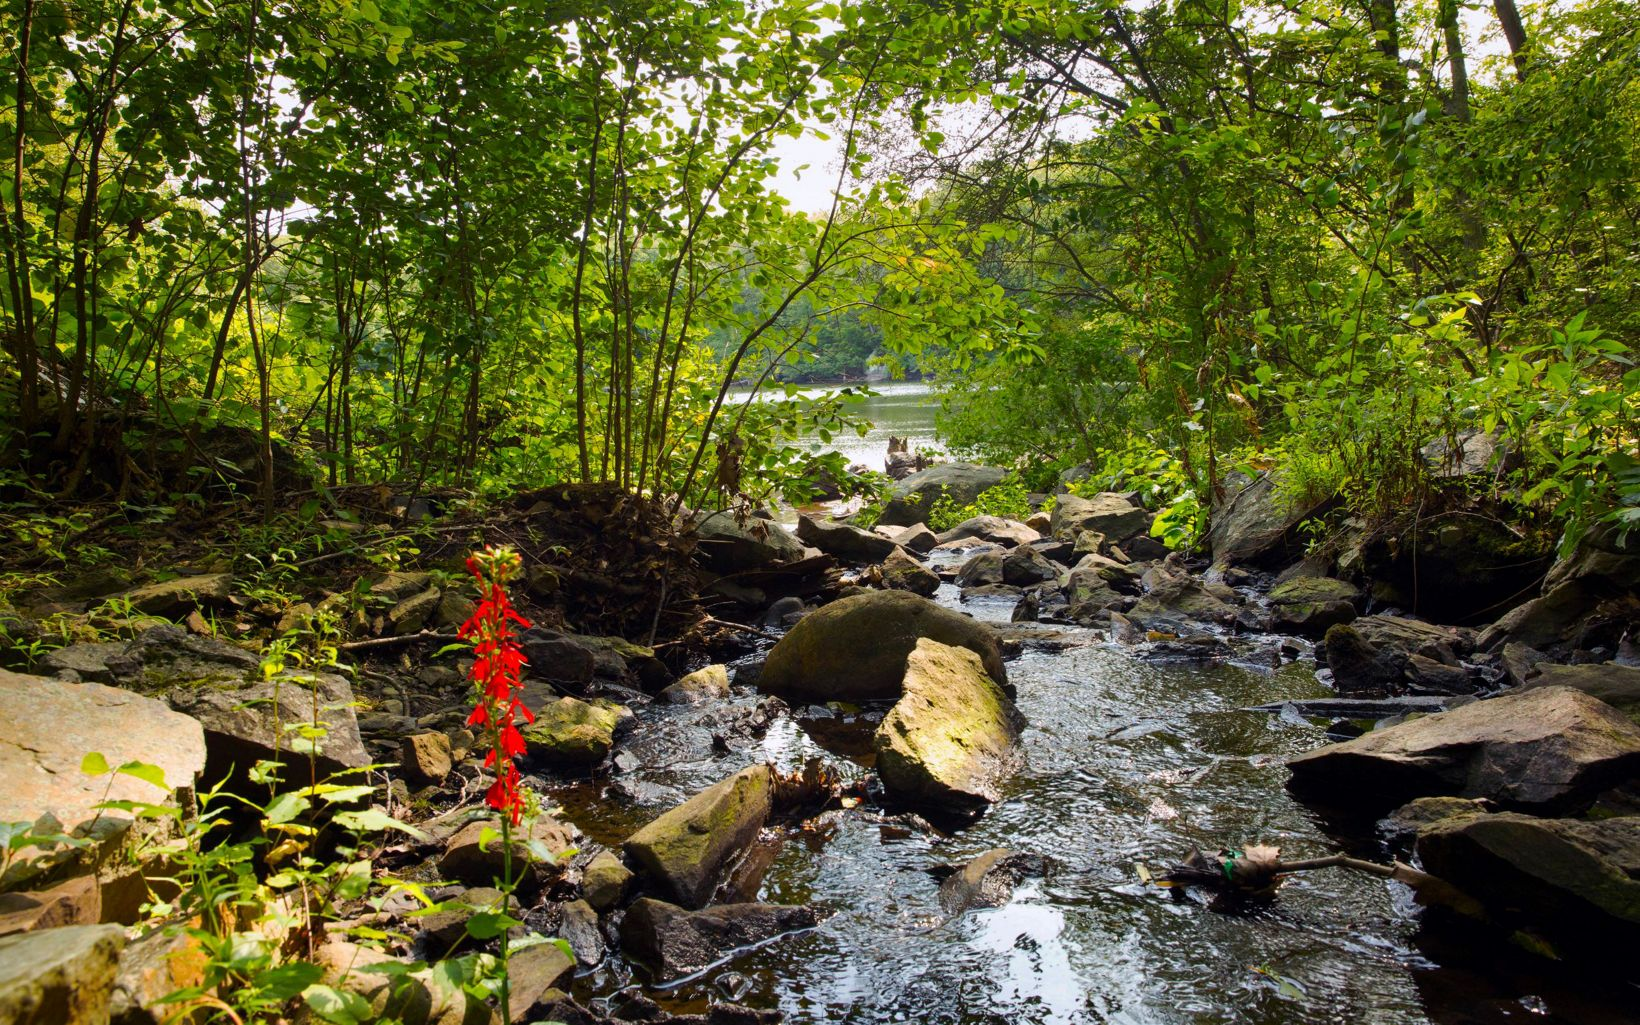 A spike of red flowers, growing next to a rocky stream